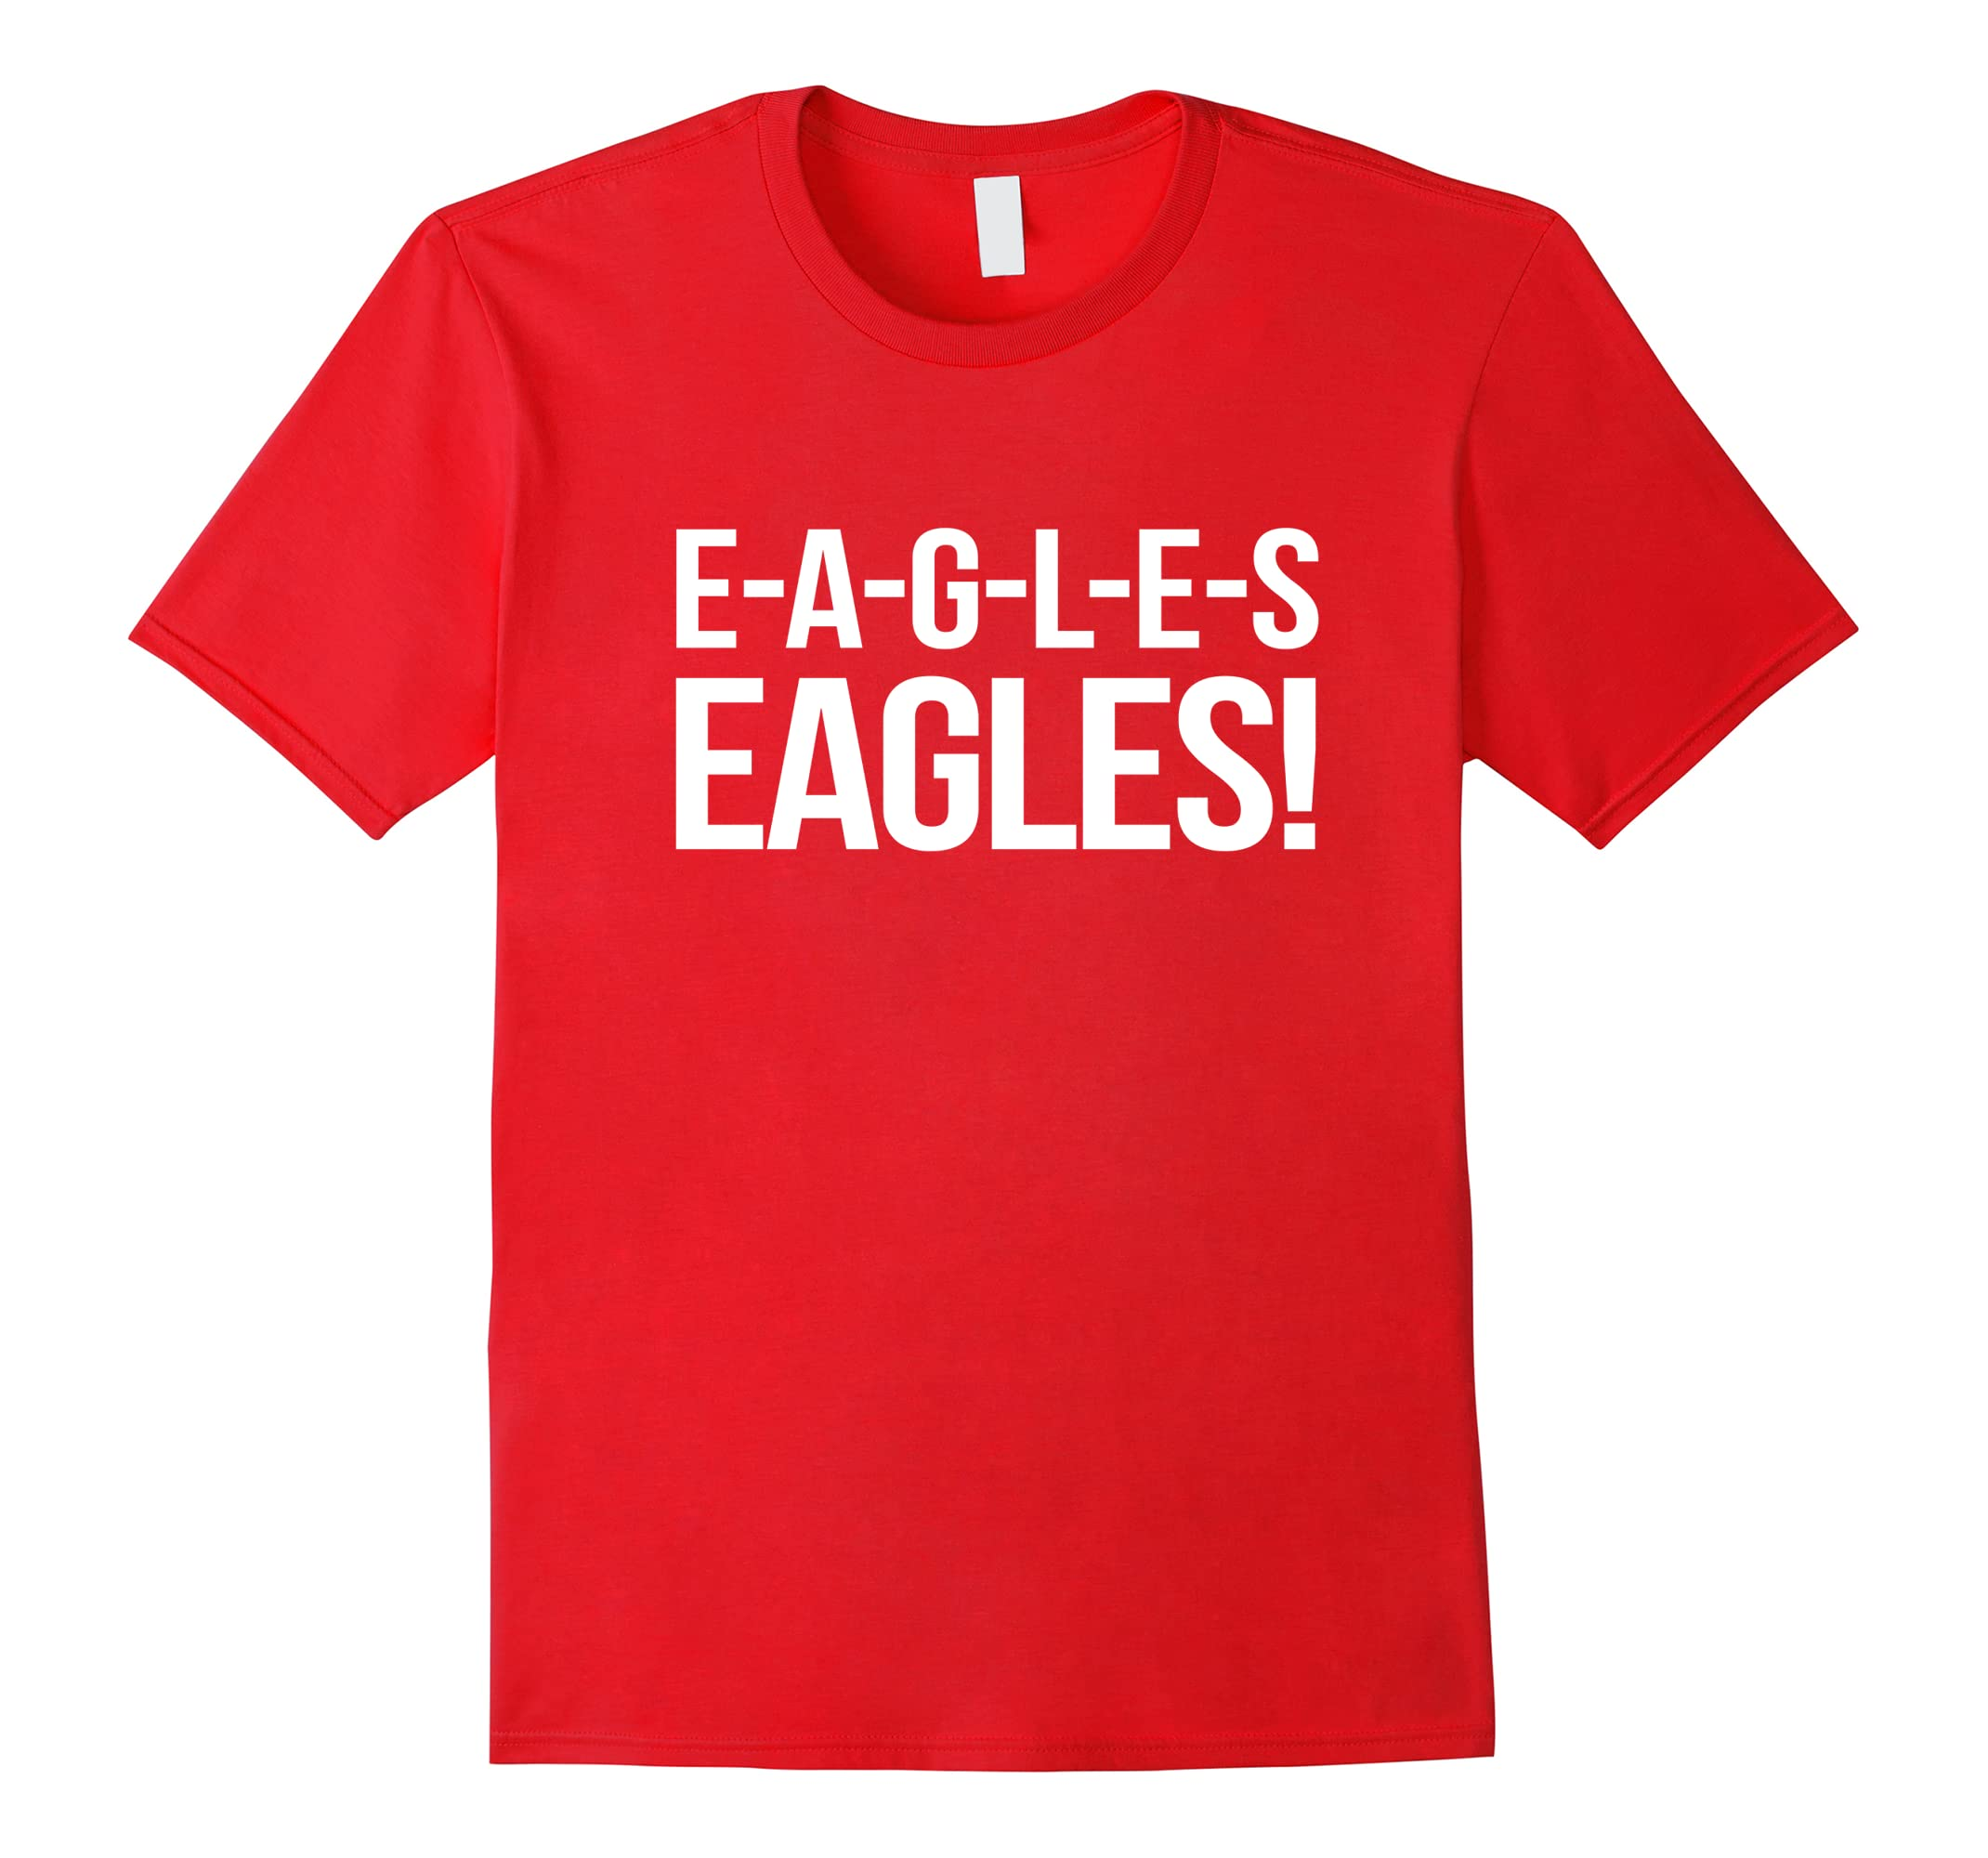 E-A-G-L-E-S Eagles Chant T-shirt-ah my shirt one gift